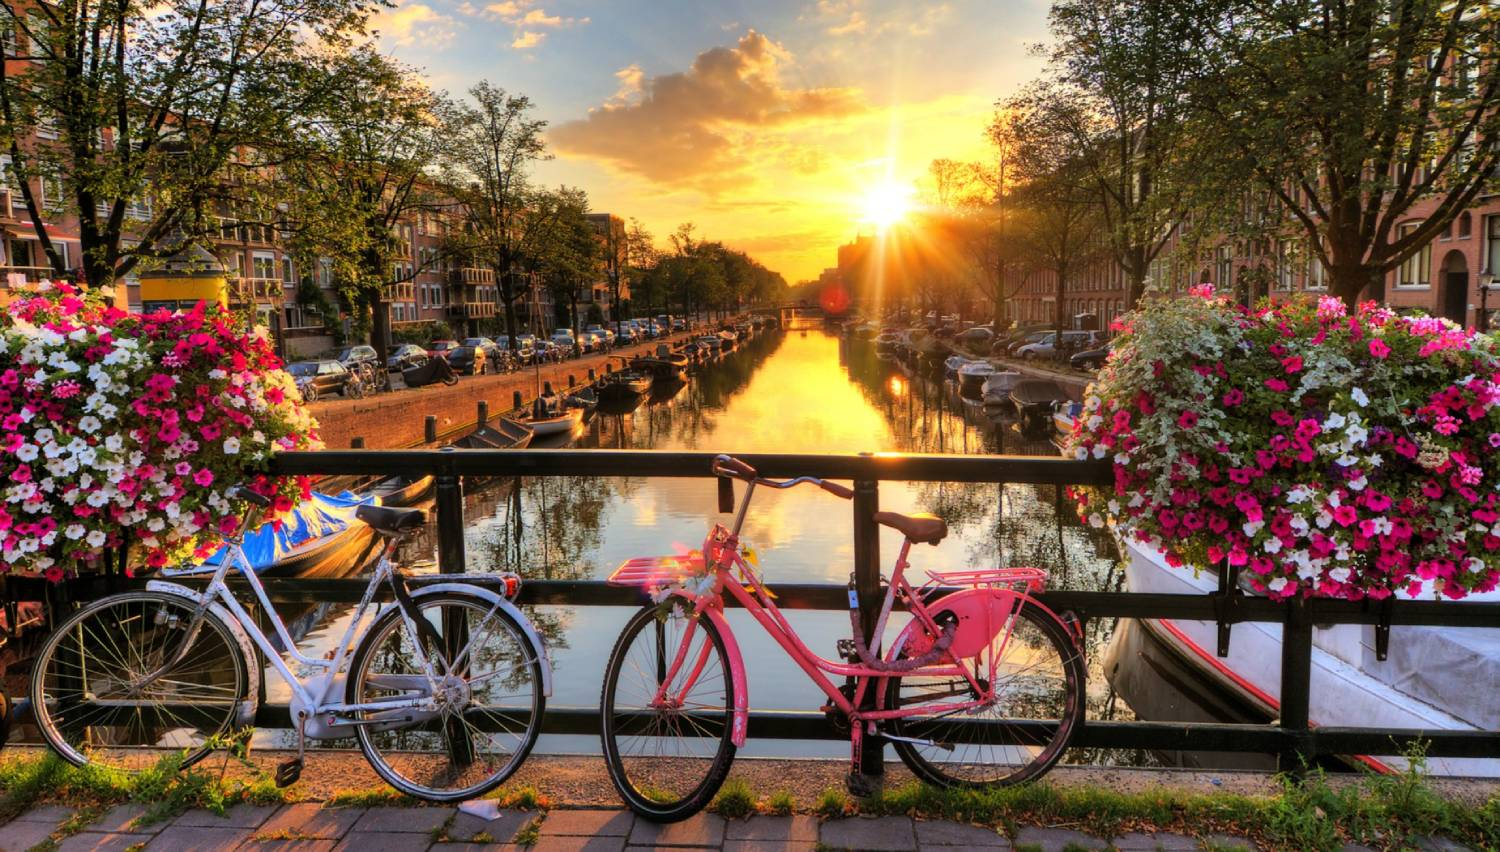 Canals of Amsterdam - Things To Do In Amsterdam